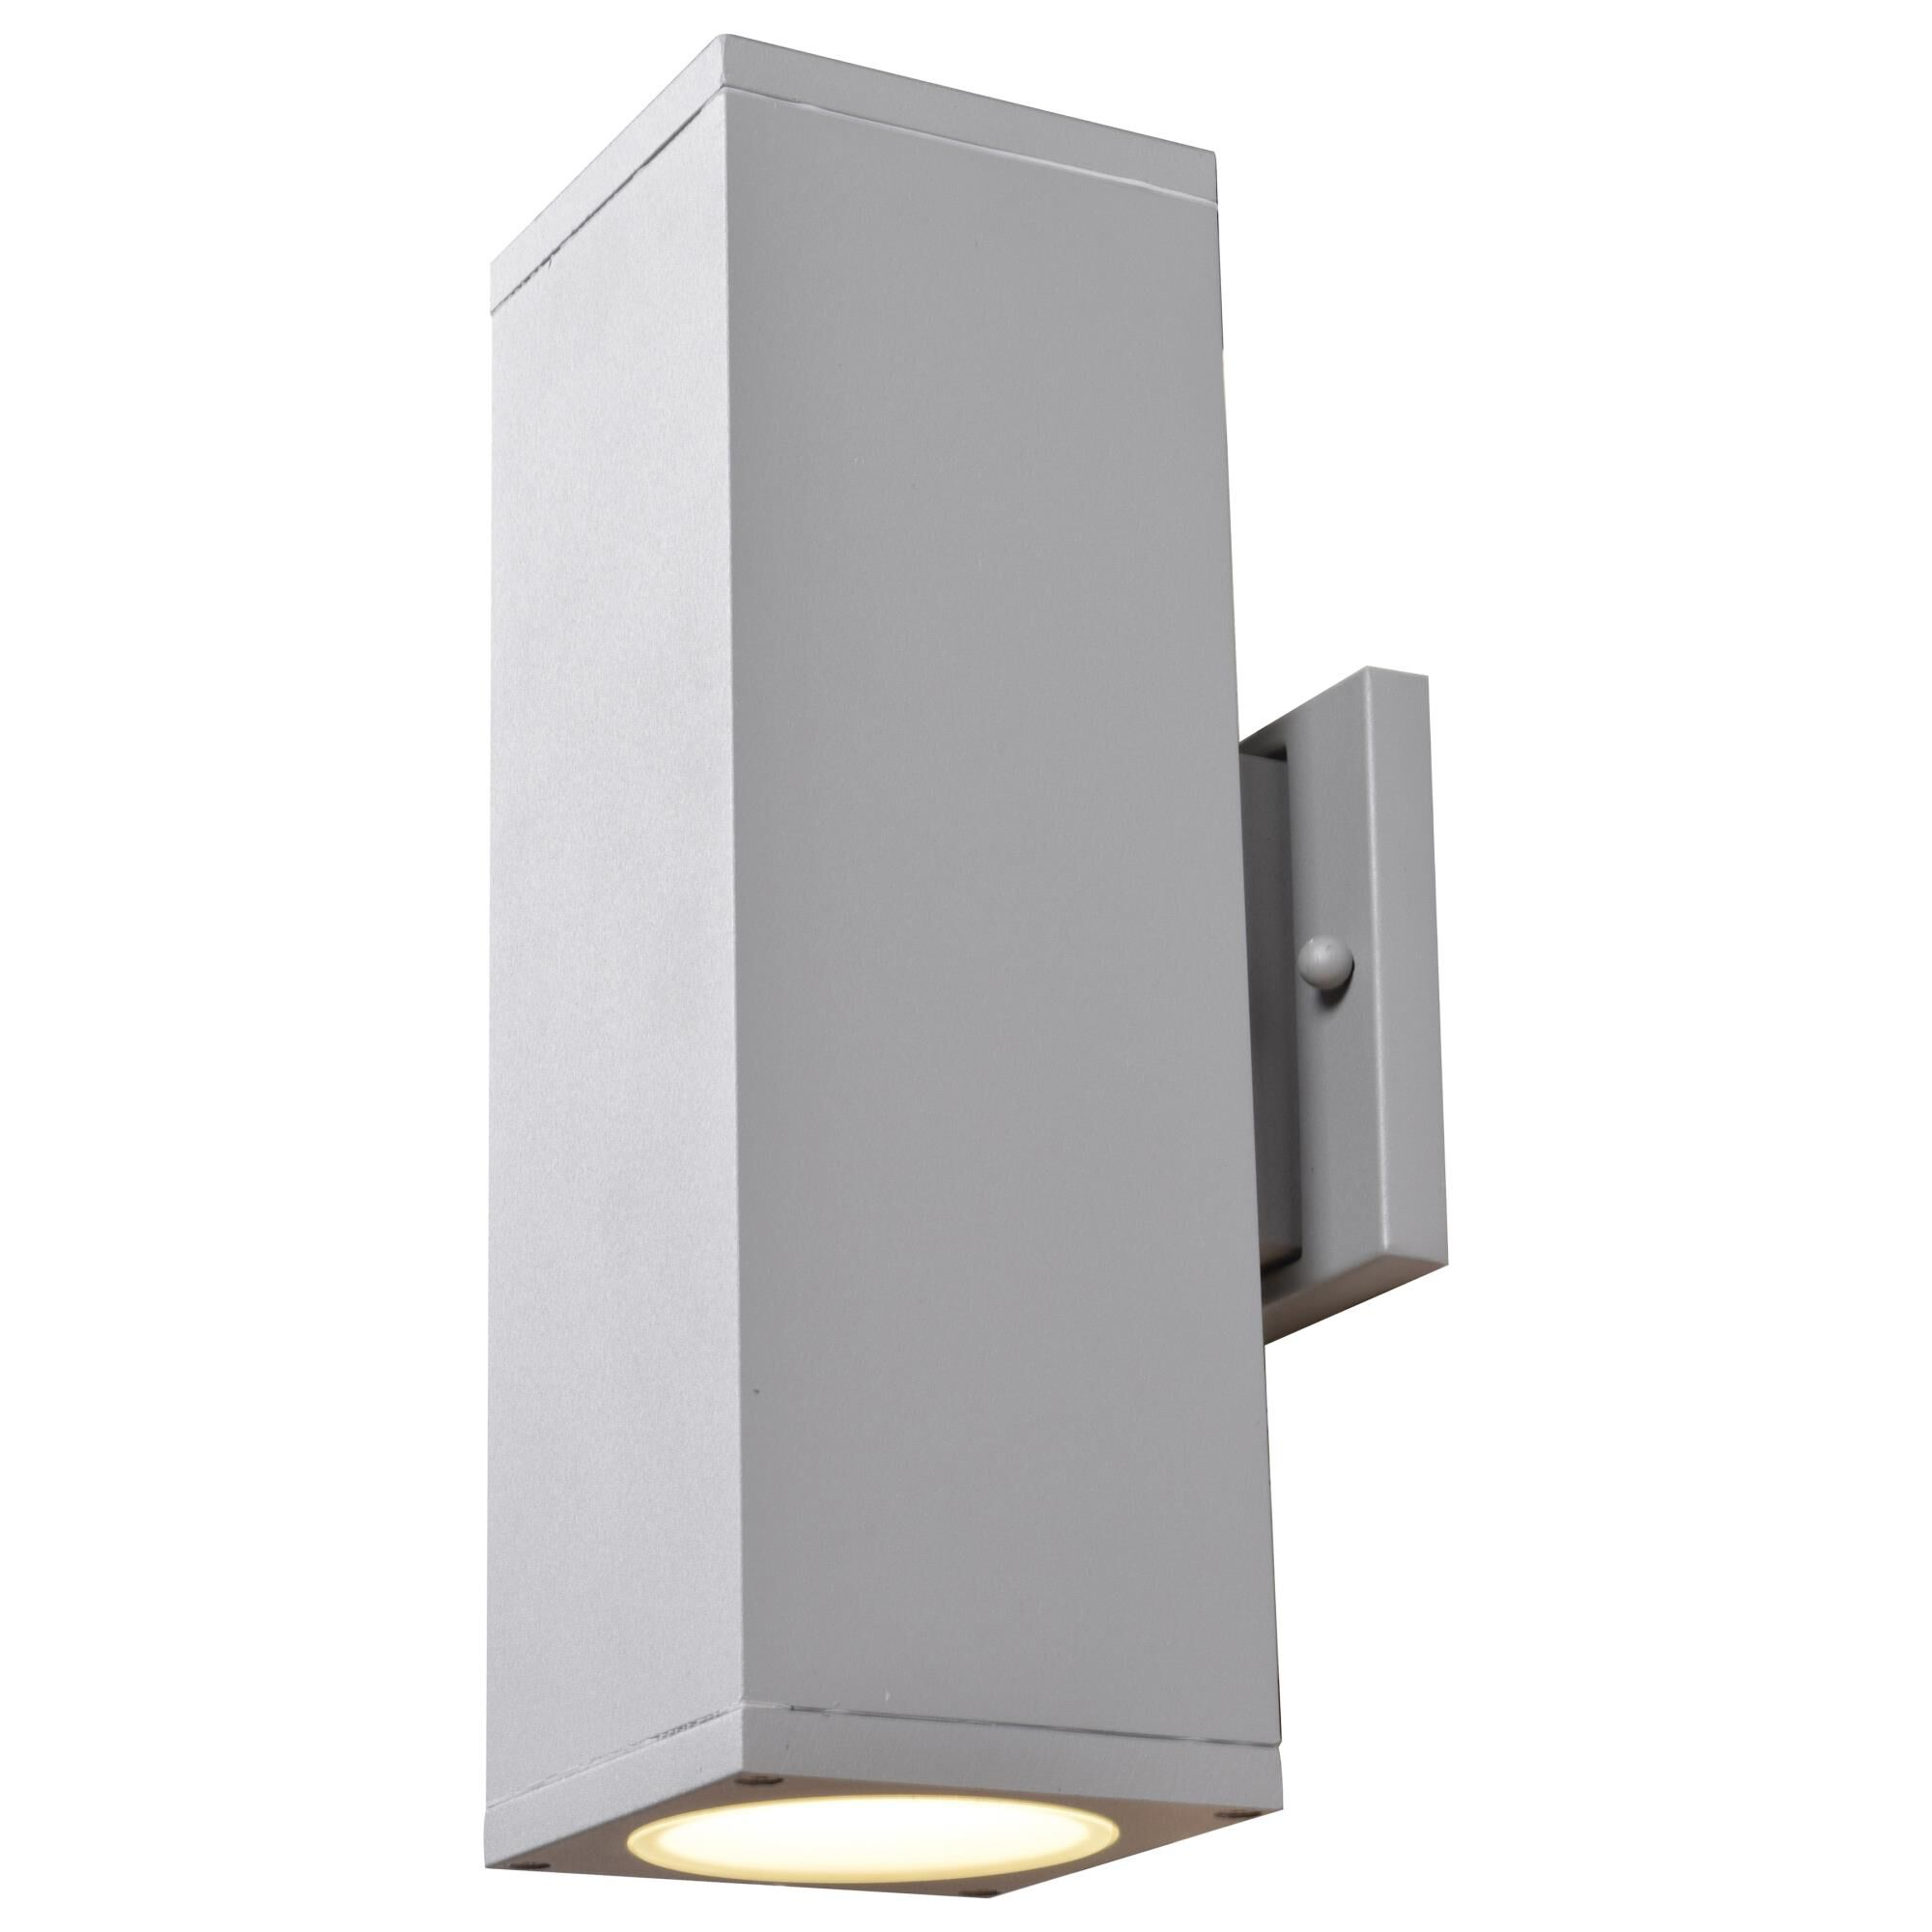 Access Lighting Bayside 12 Inch Tall 2 Light LED Outdoor Wall Light Bayside 20033LEDMG BRZFST Modern Contemporary